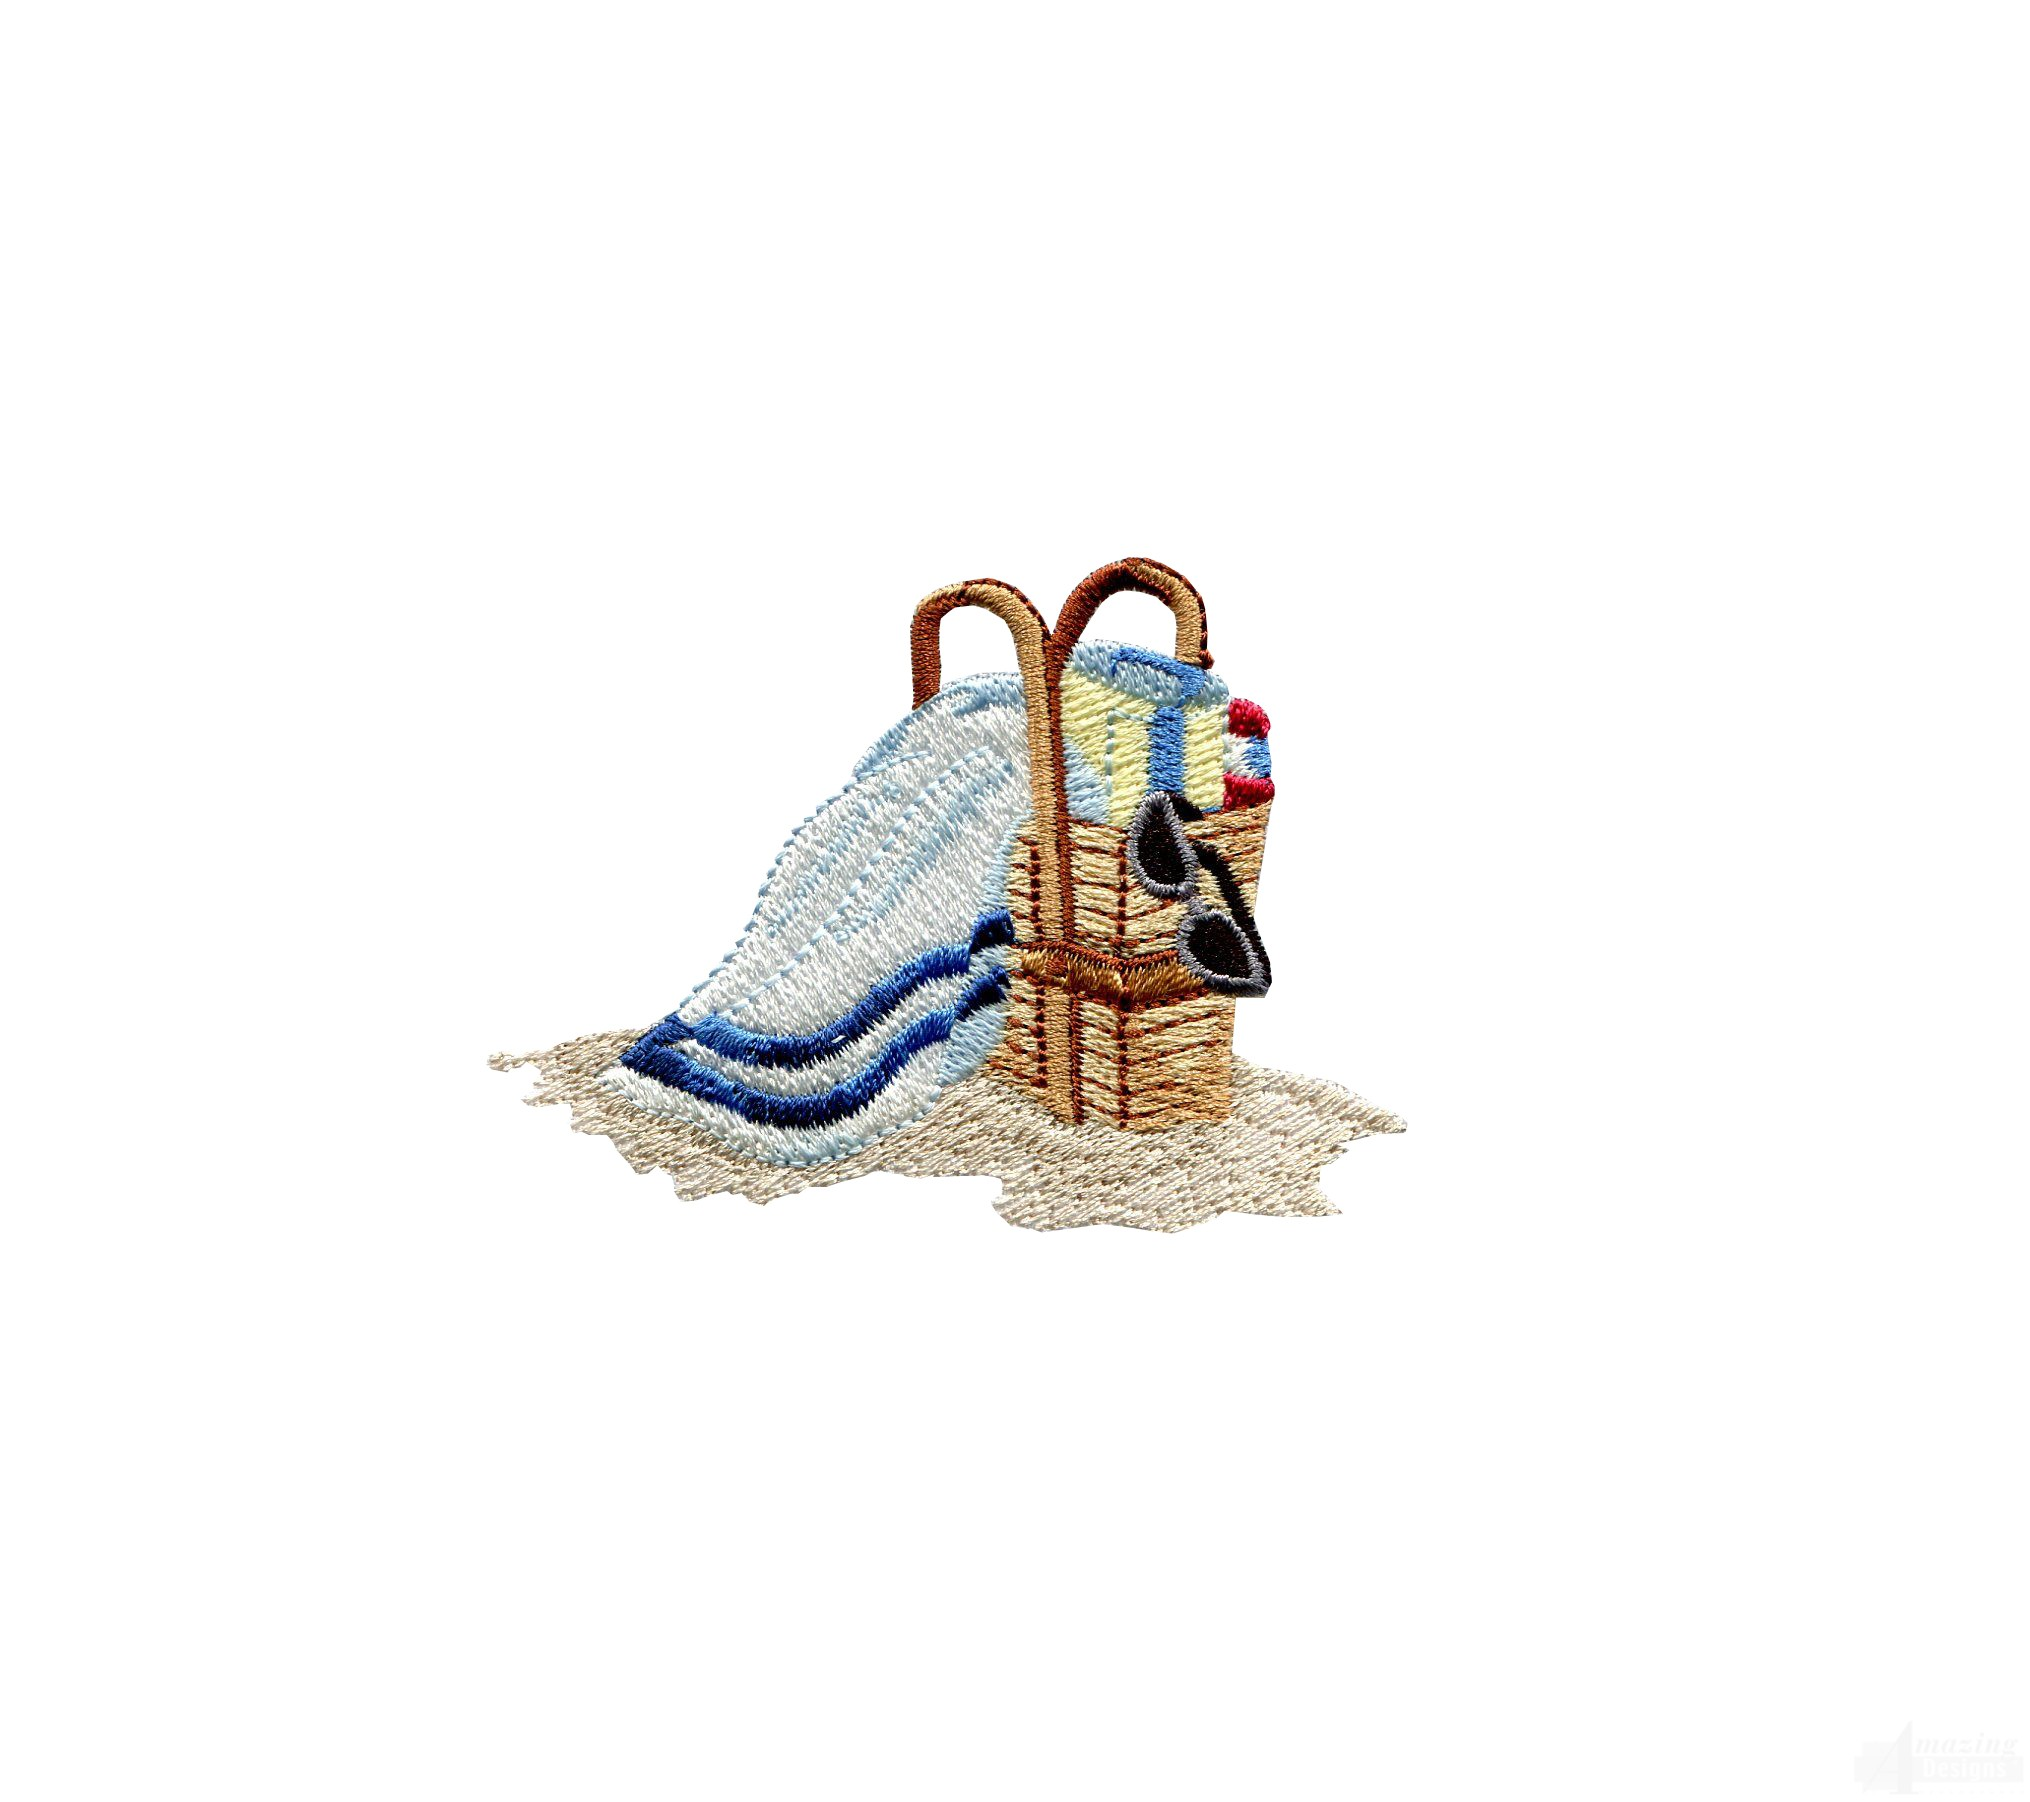 Swnse205 beach bag embroidery design for Beach house embroidery design